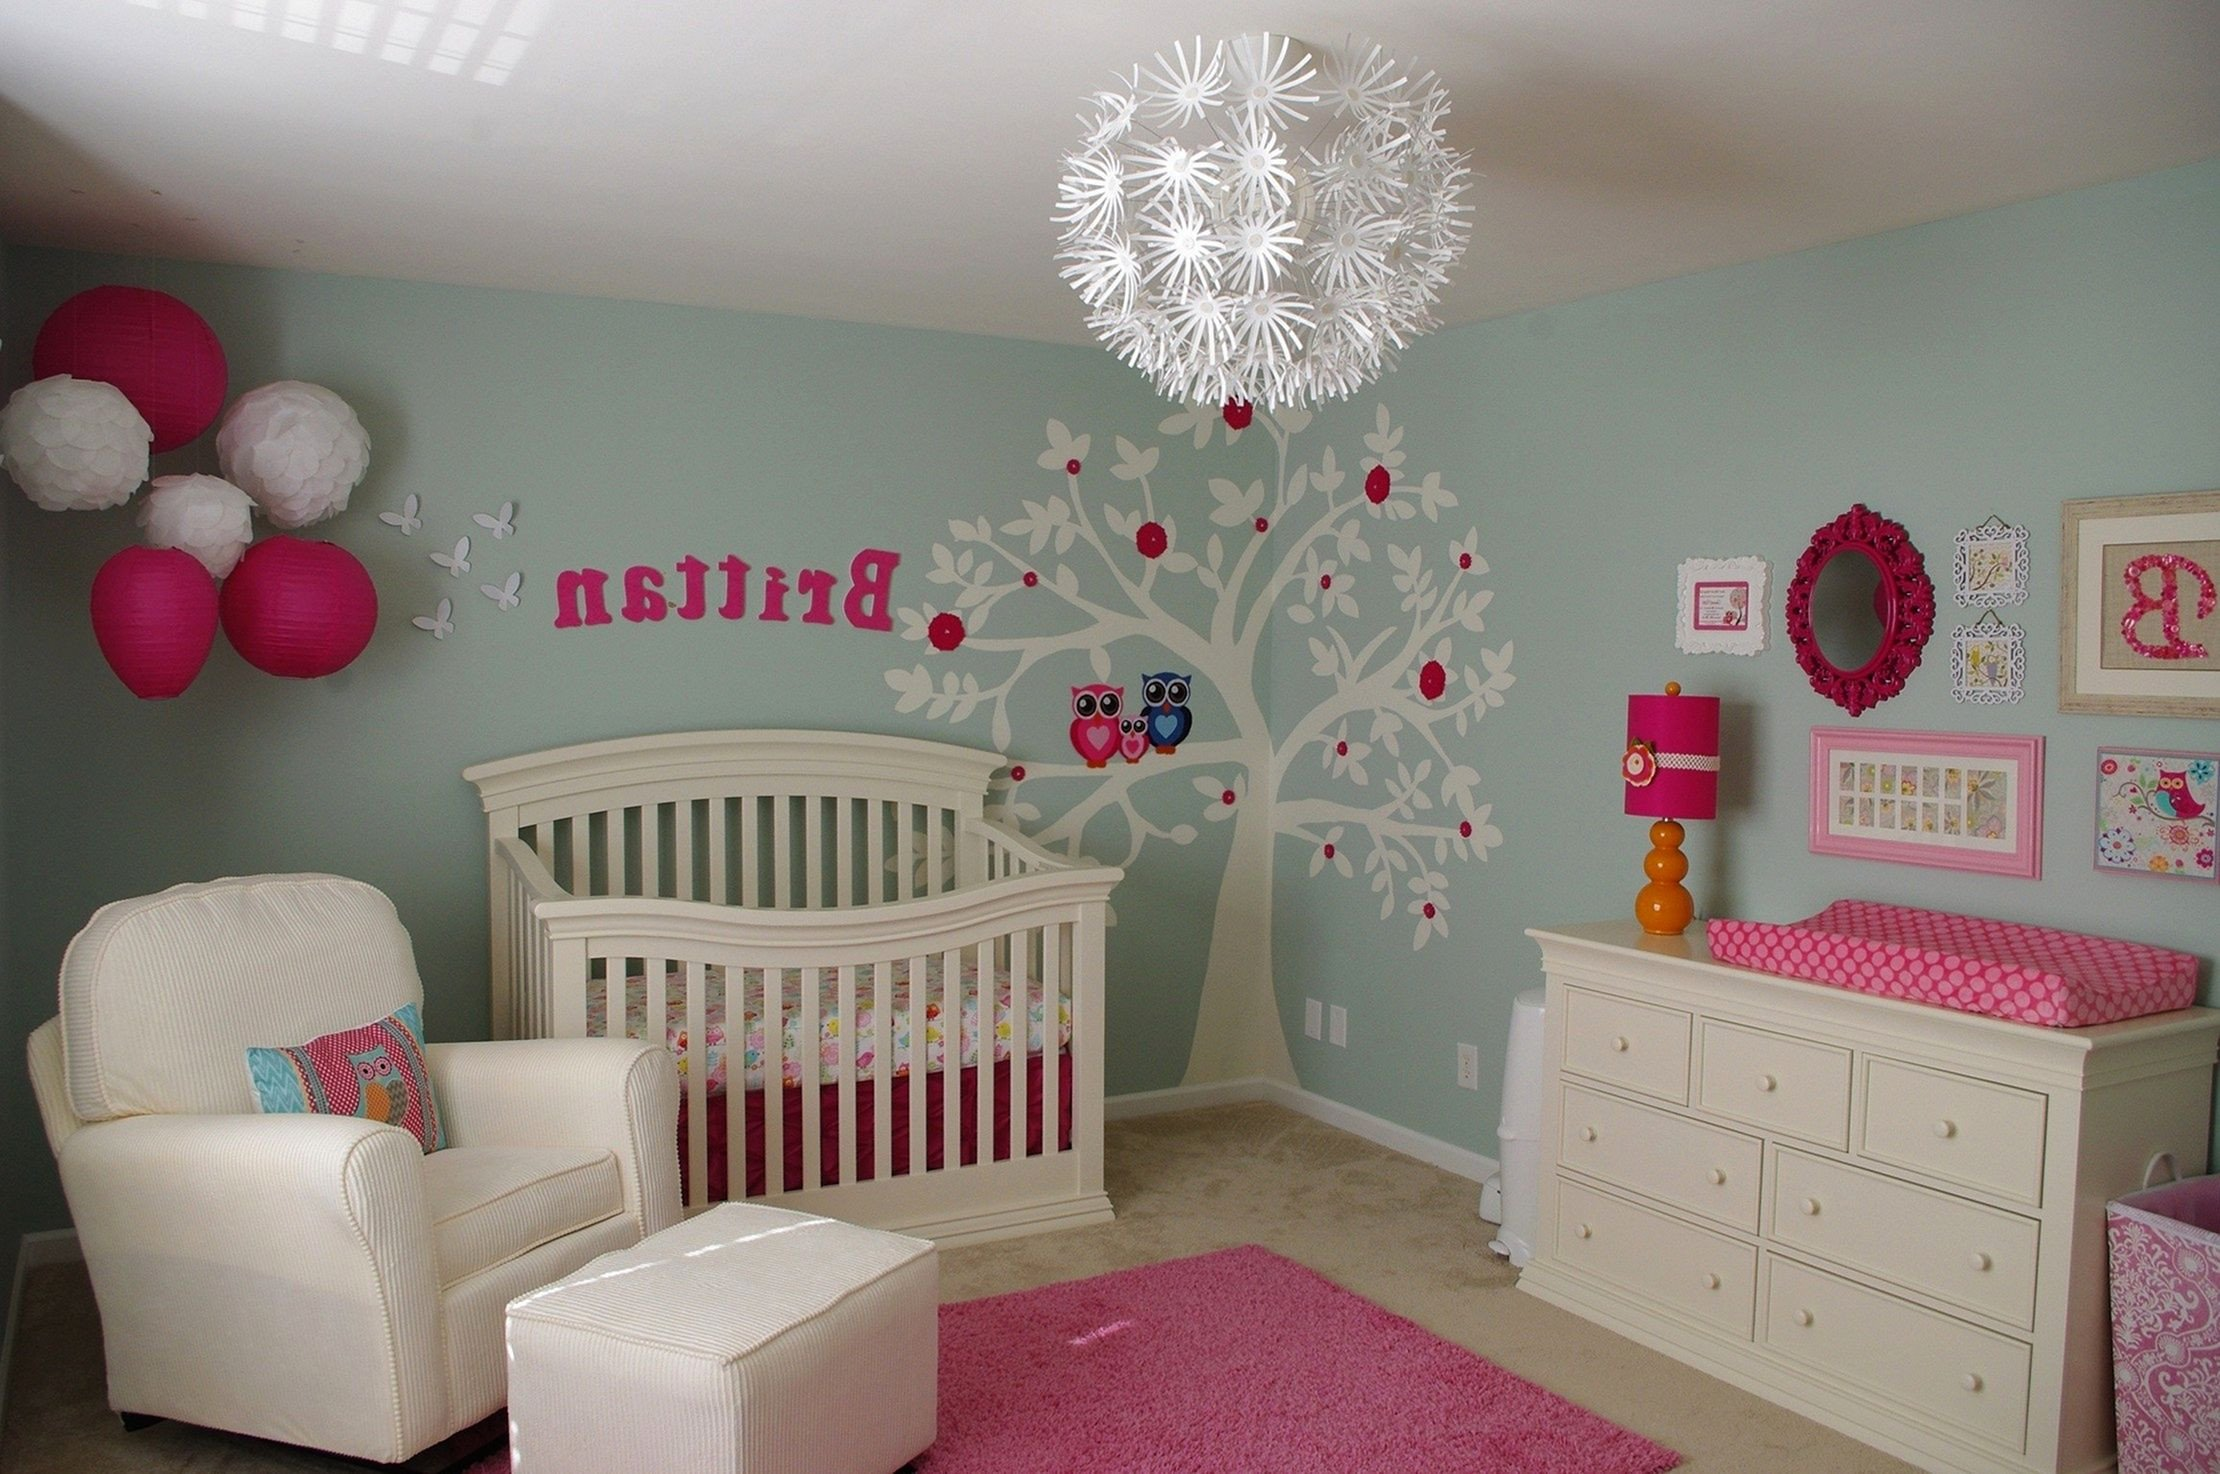 Baby Girls Room Decor Ideas Awesome Diy Baby Room Decor Ideas for Girls Diy Baby Room Decor Ideas for Girls Design Ideas and Photos